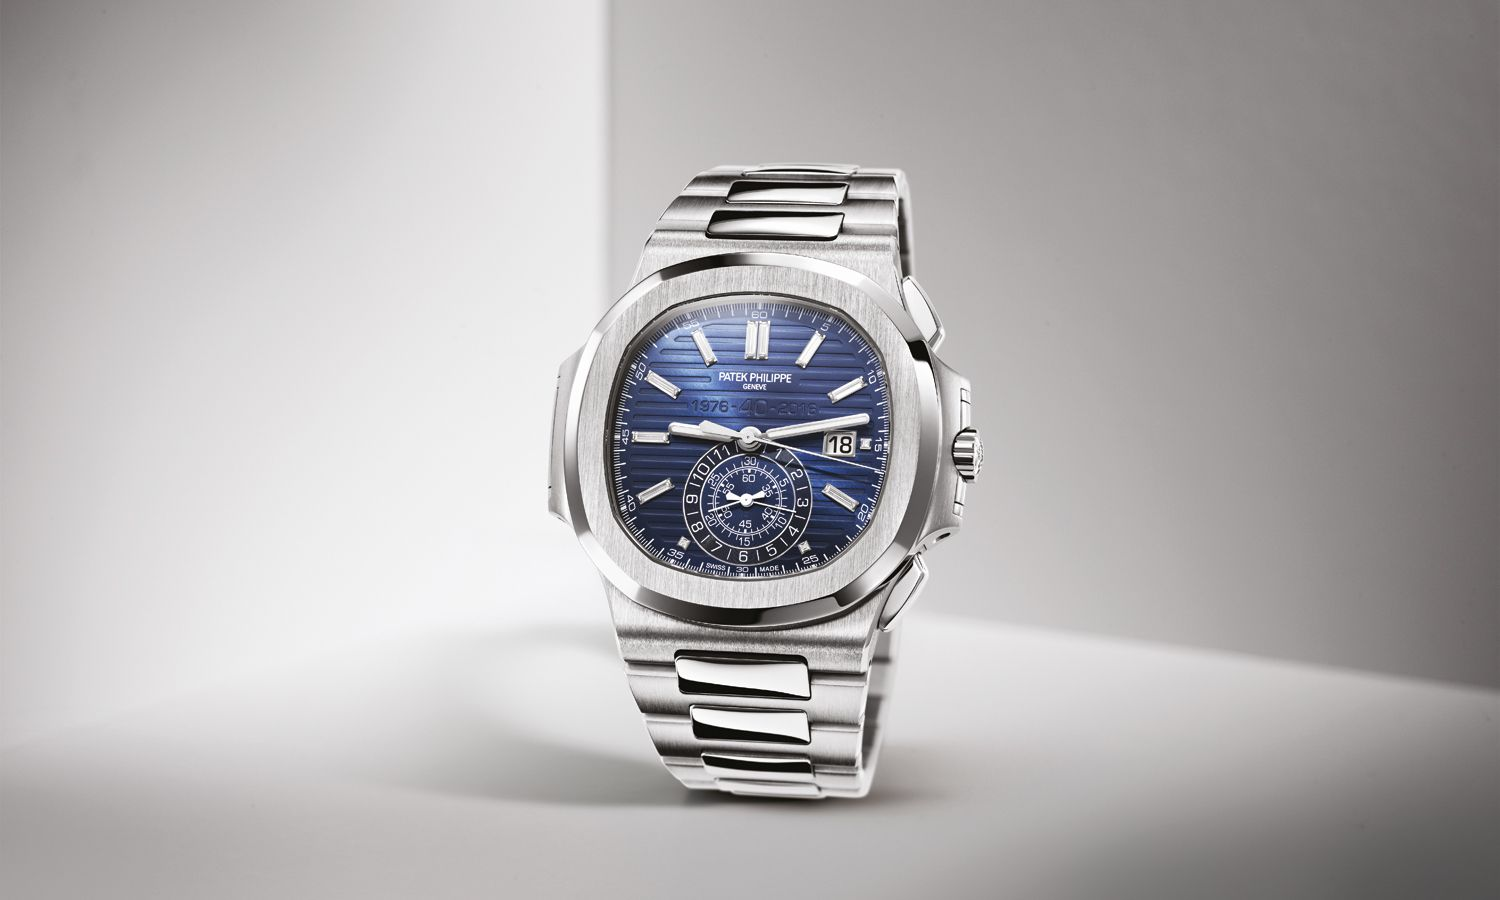 10 Reasons You Need This Patek Philippe Nautilus Watch